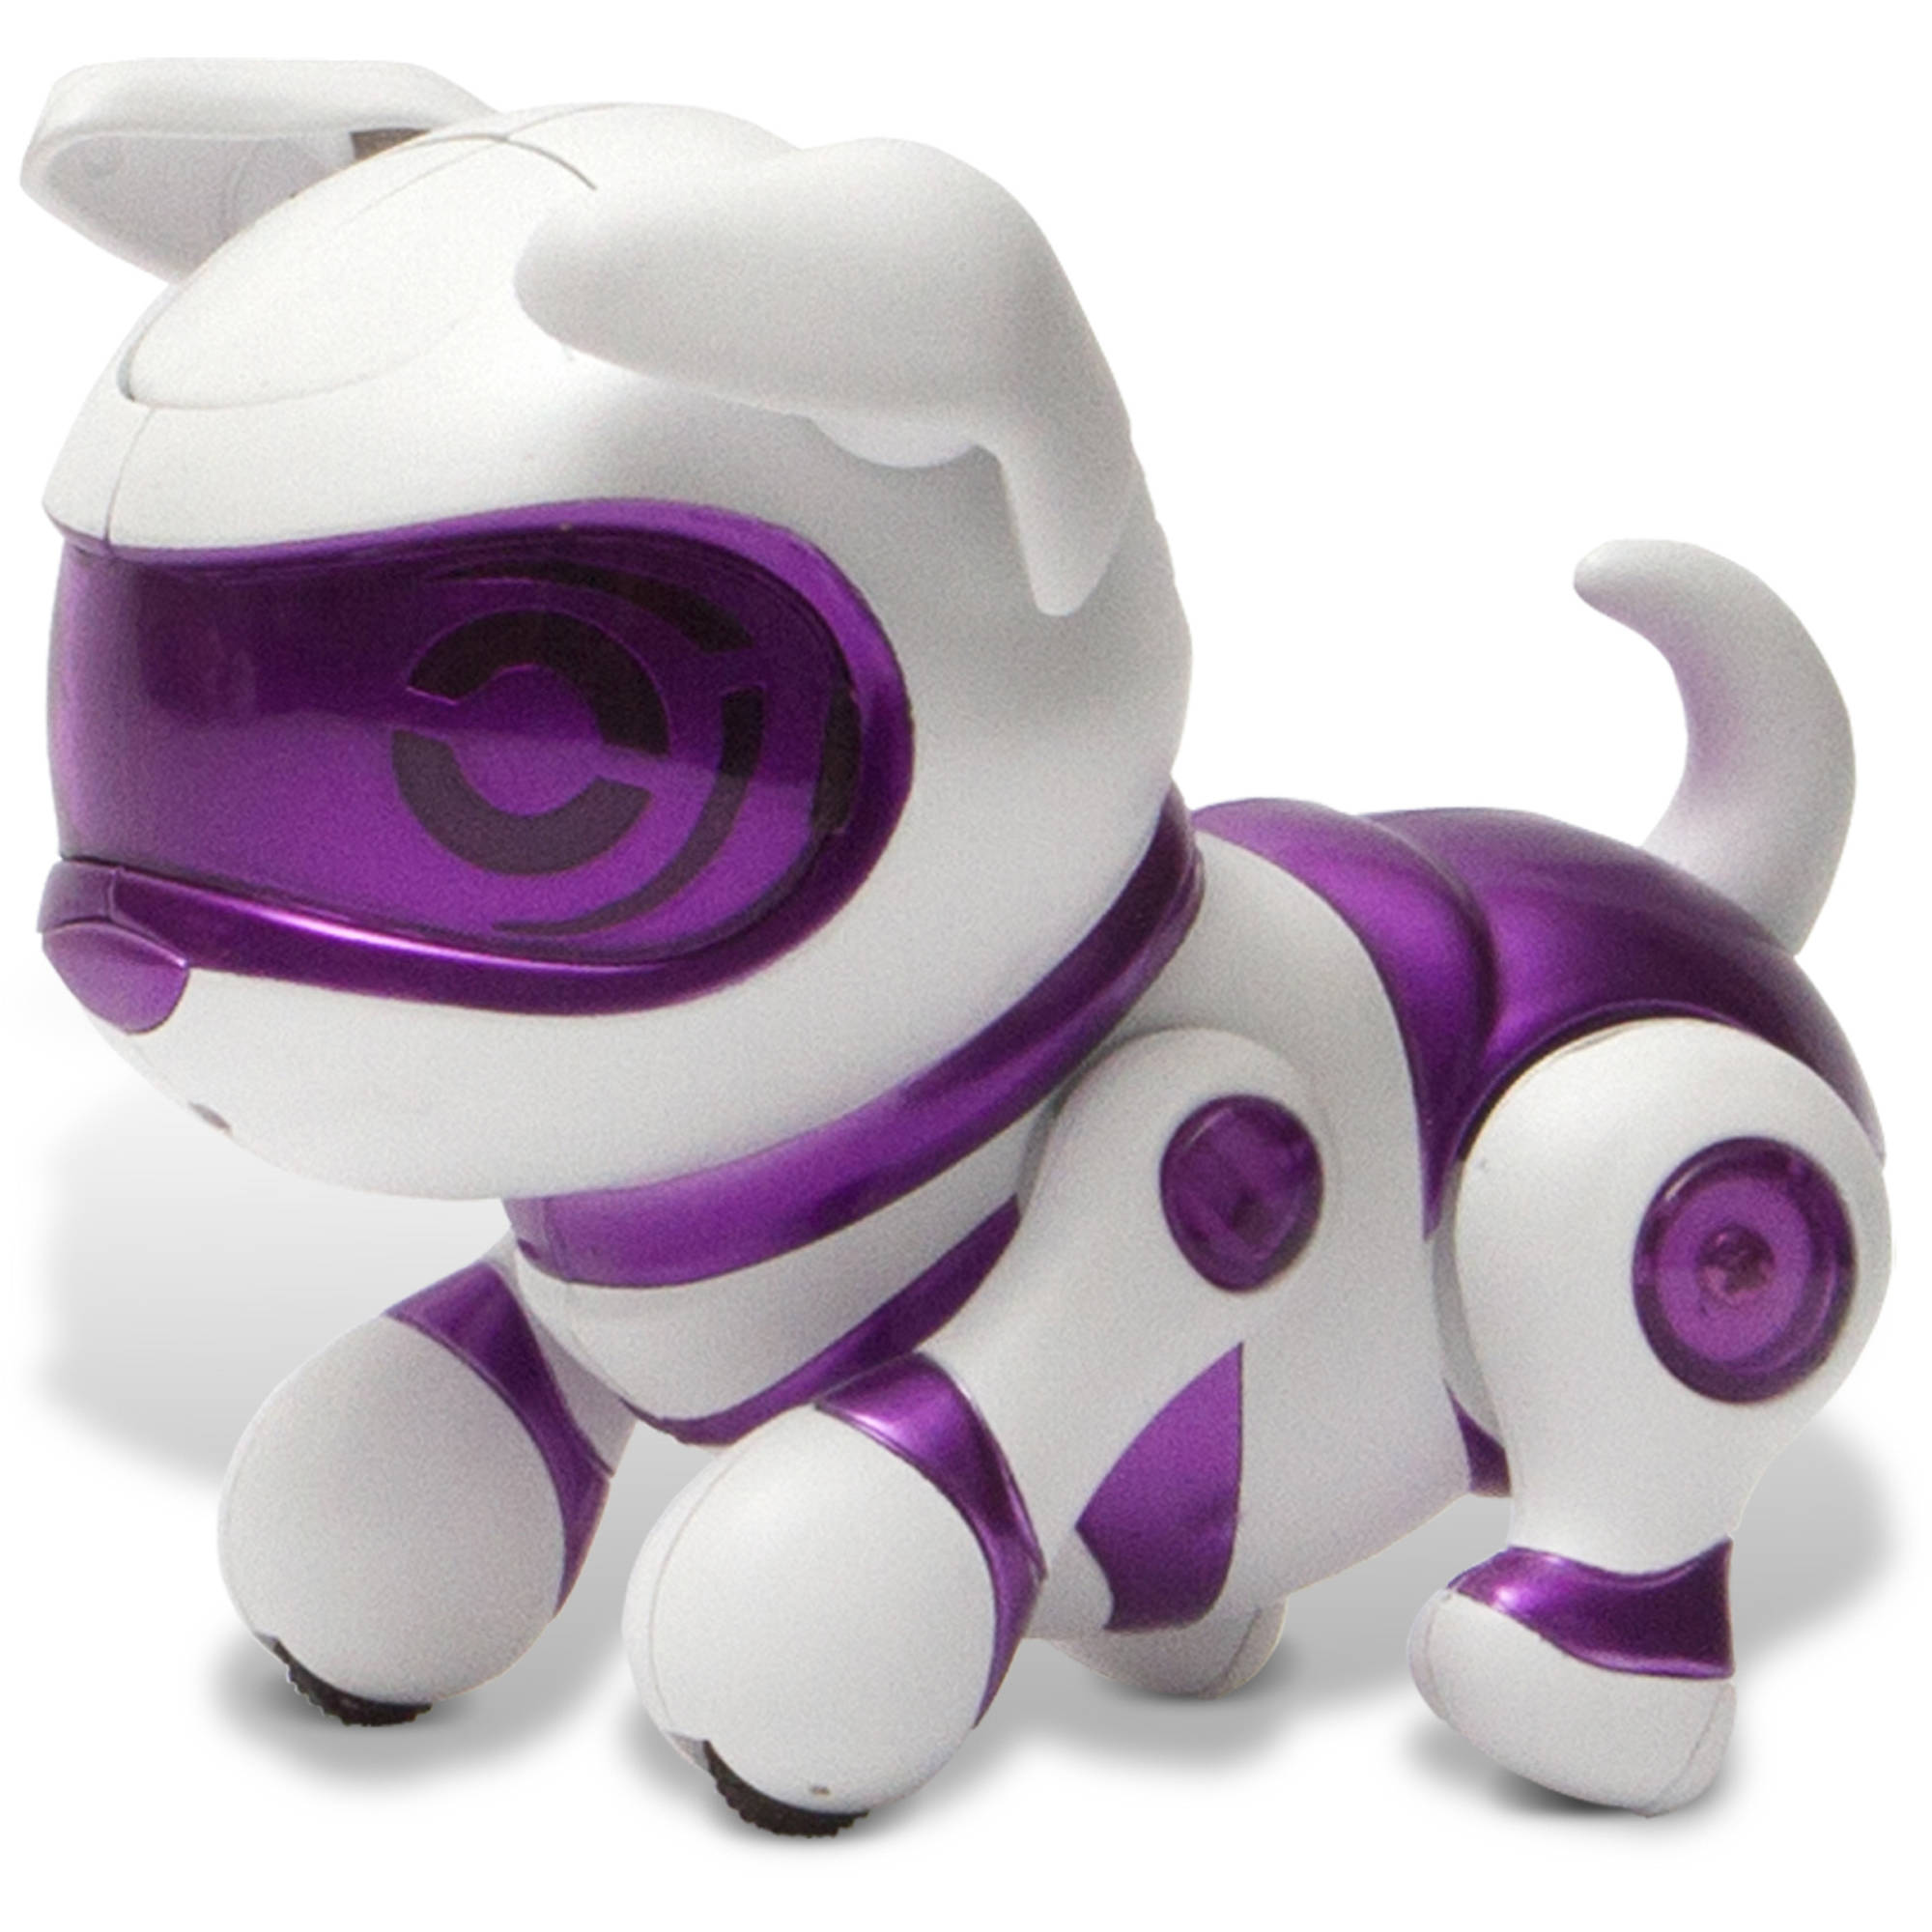 Tekno Robotic Pets, Newborn Puppy, Purple by Genesis